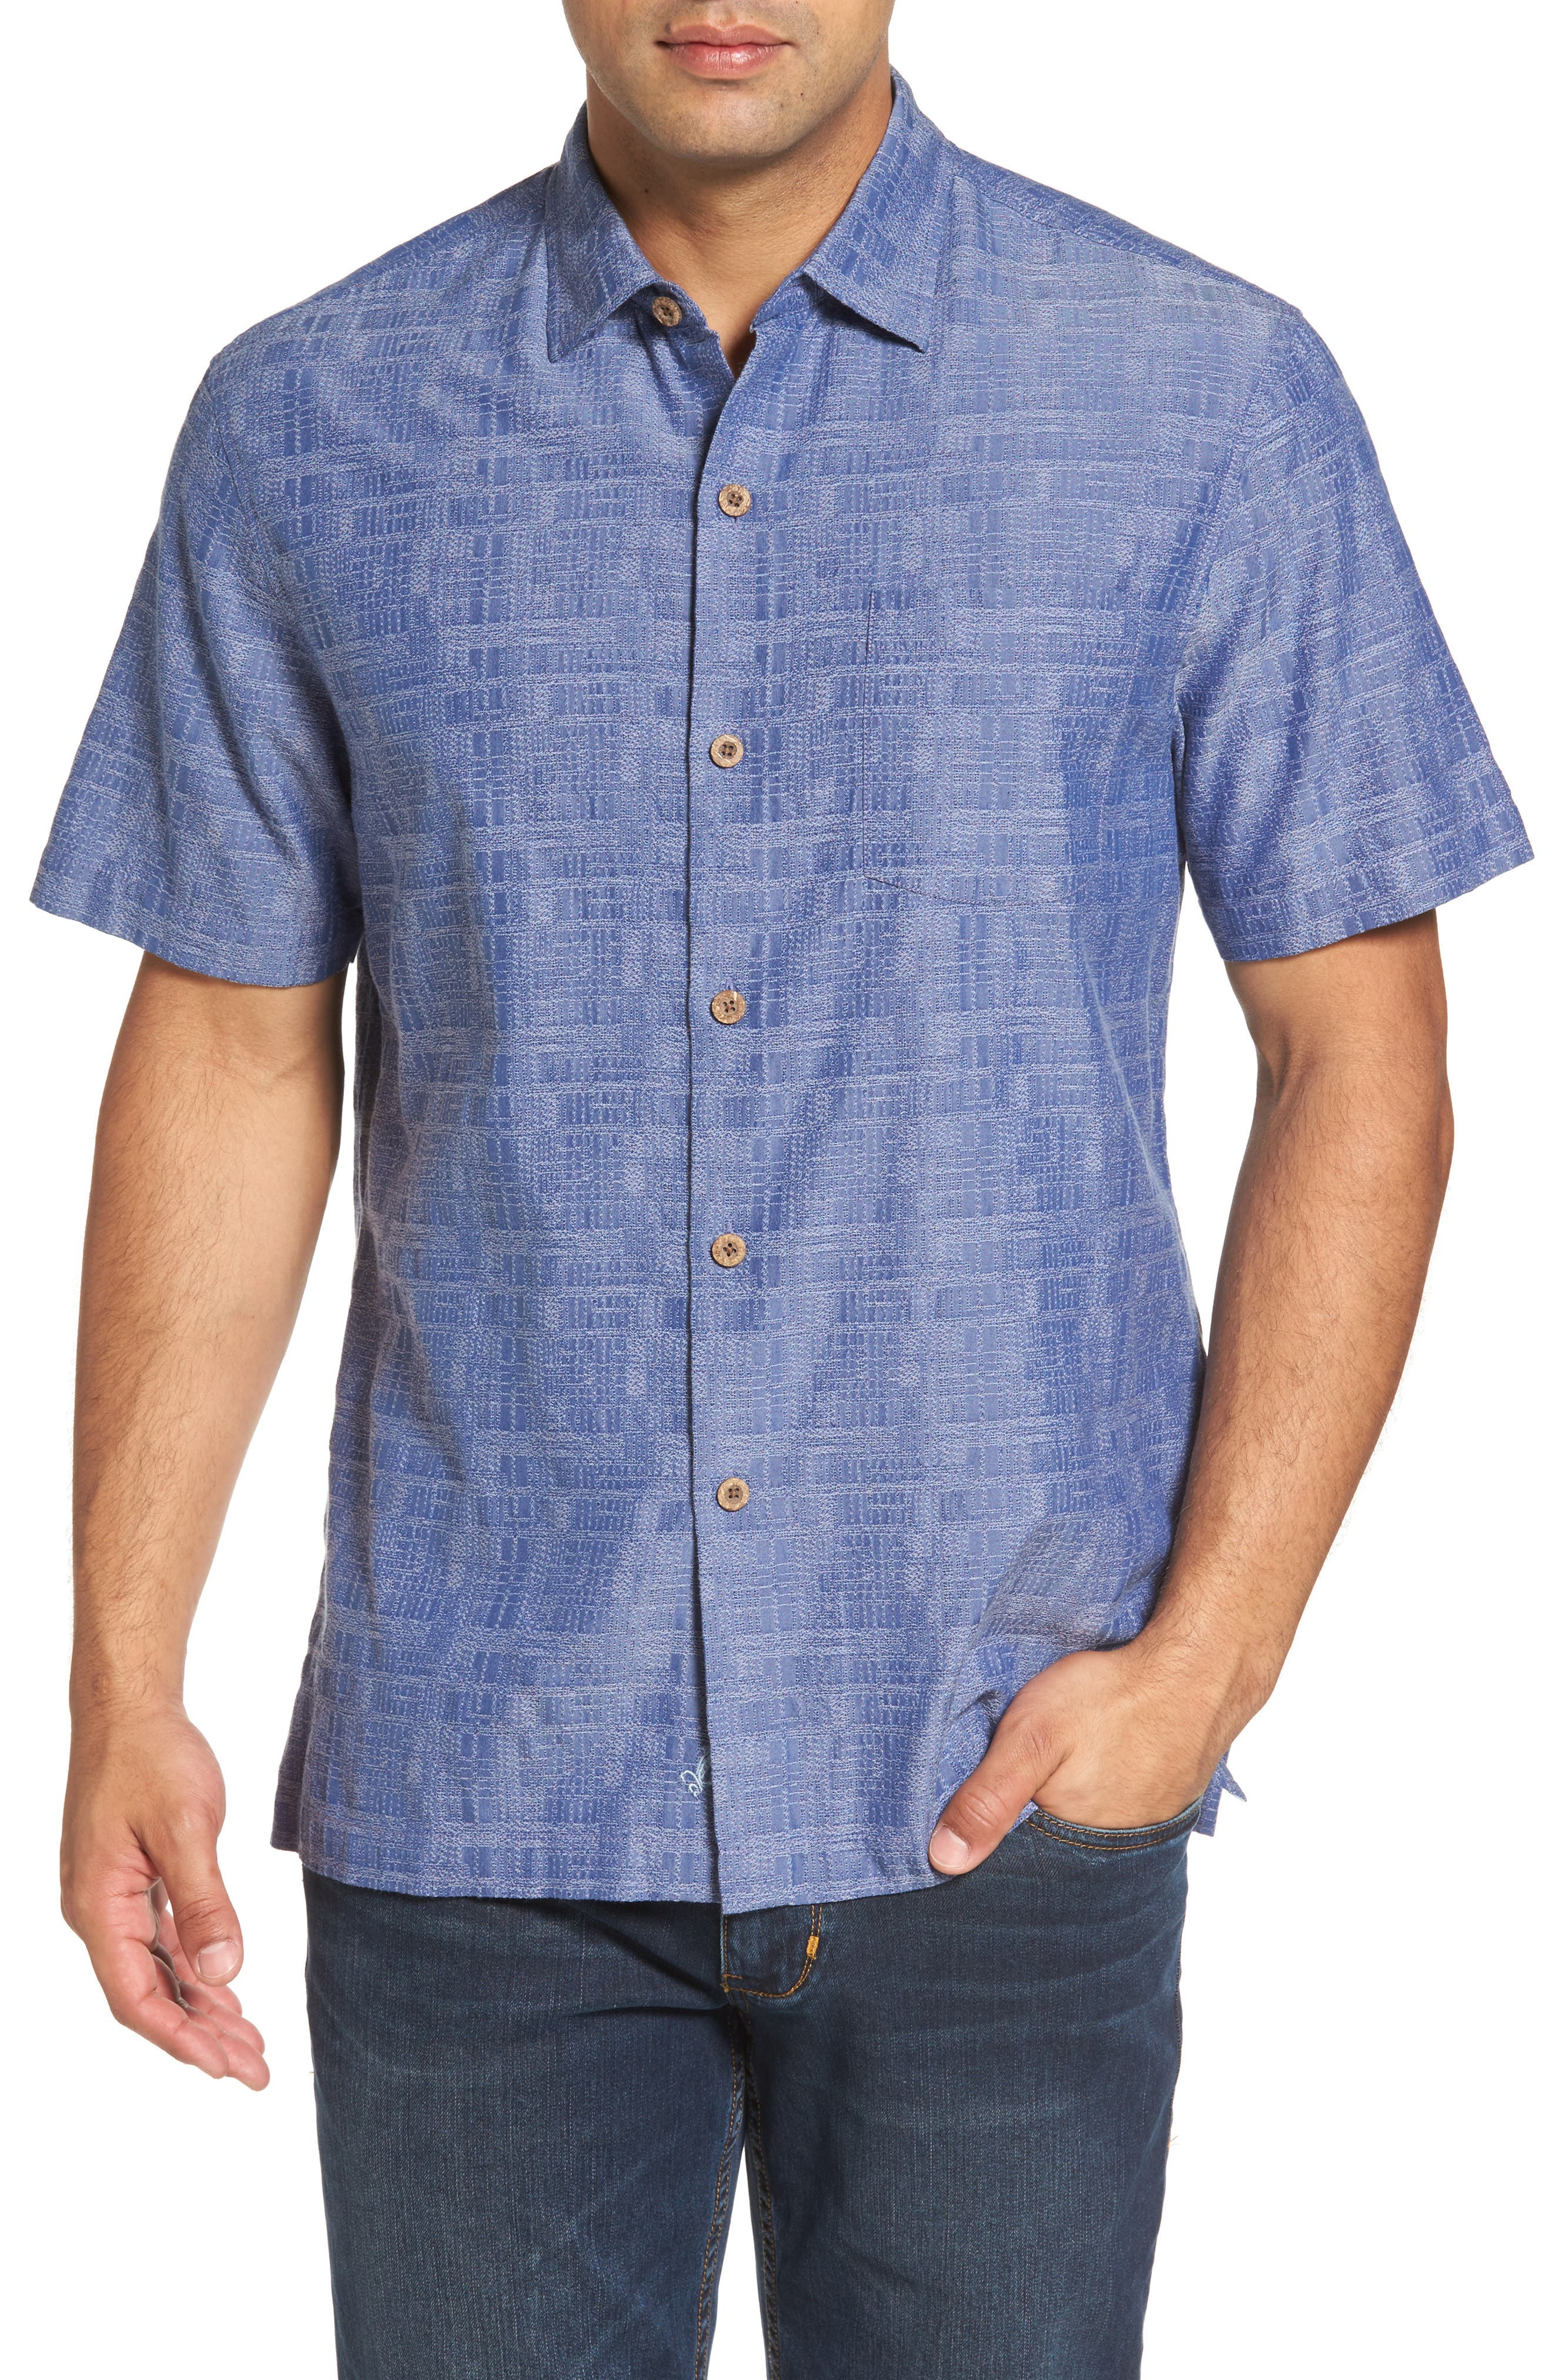 Main Image - Tommy Bahama Oceanside Woven Shirt